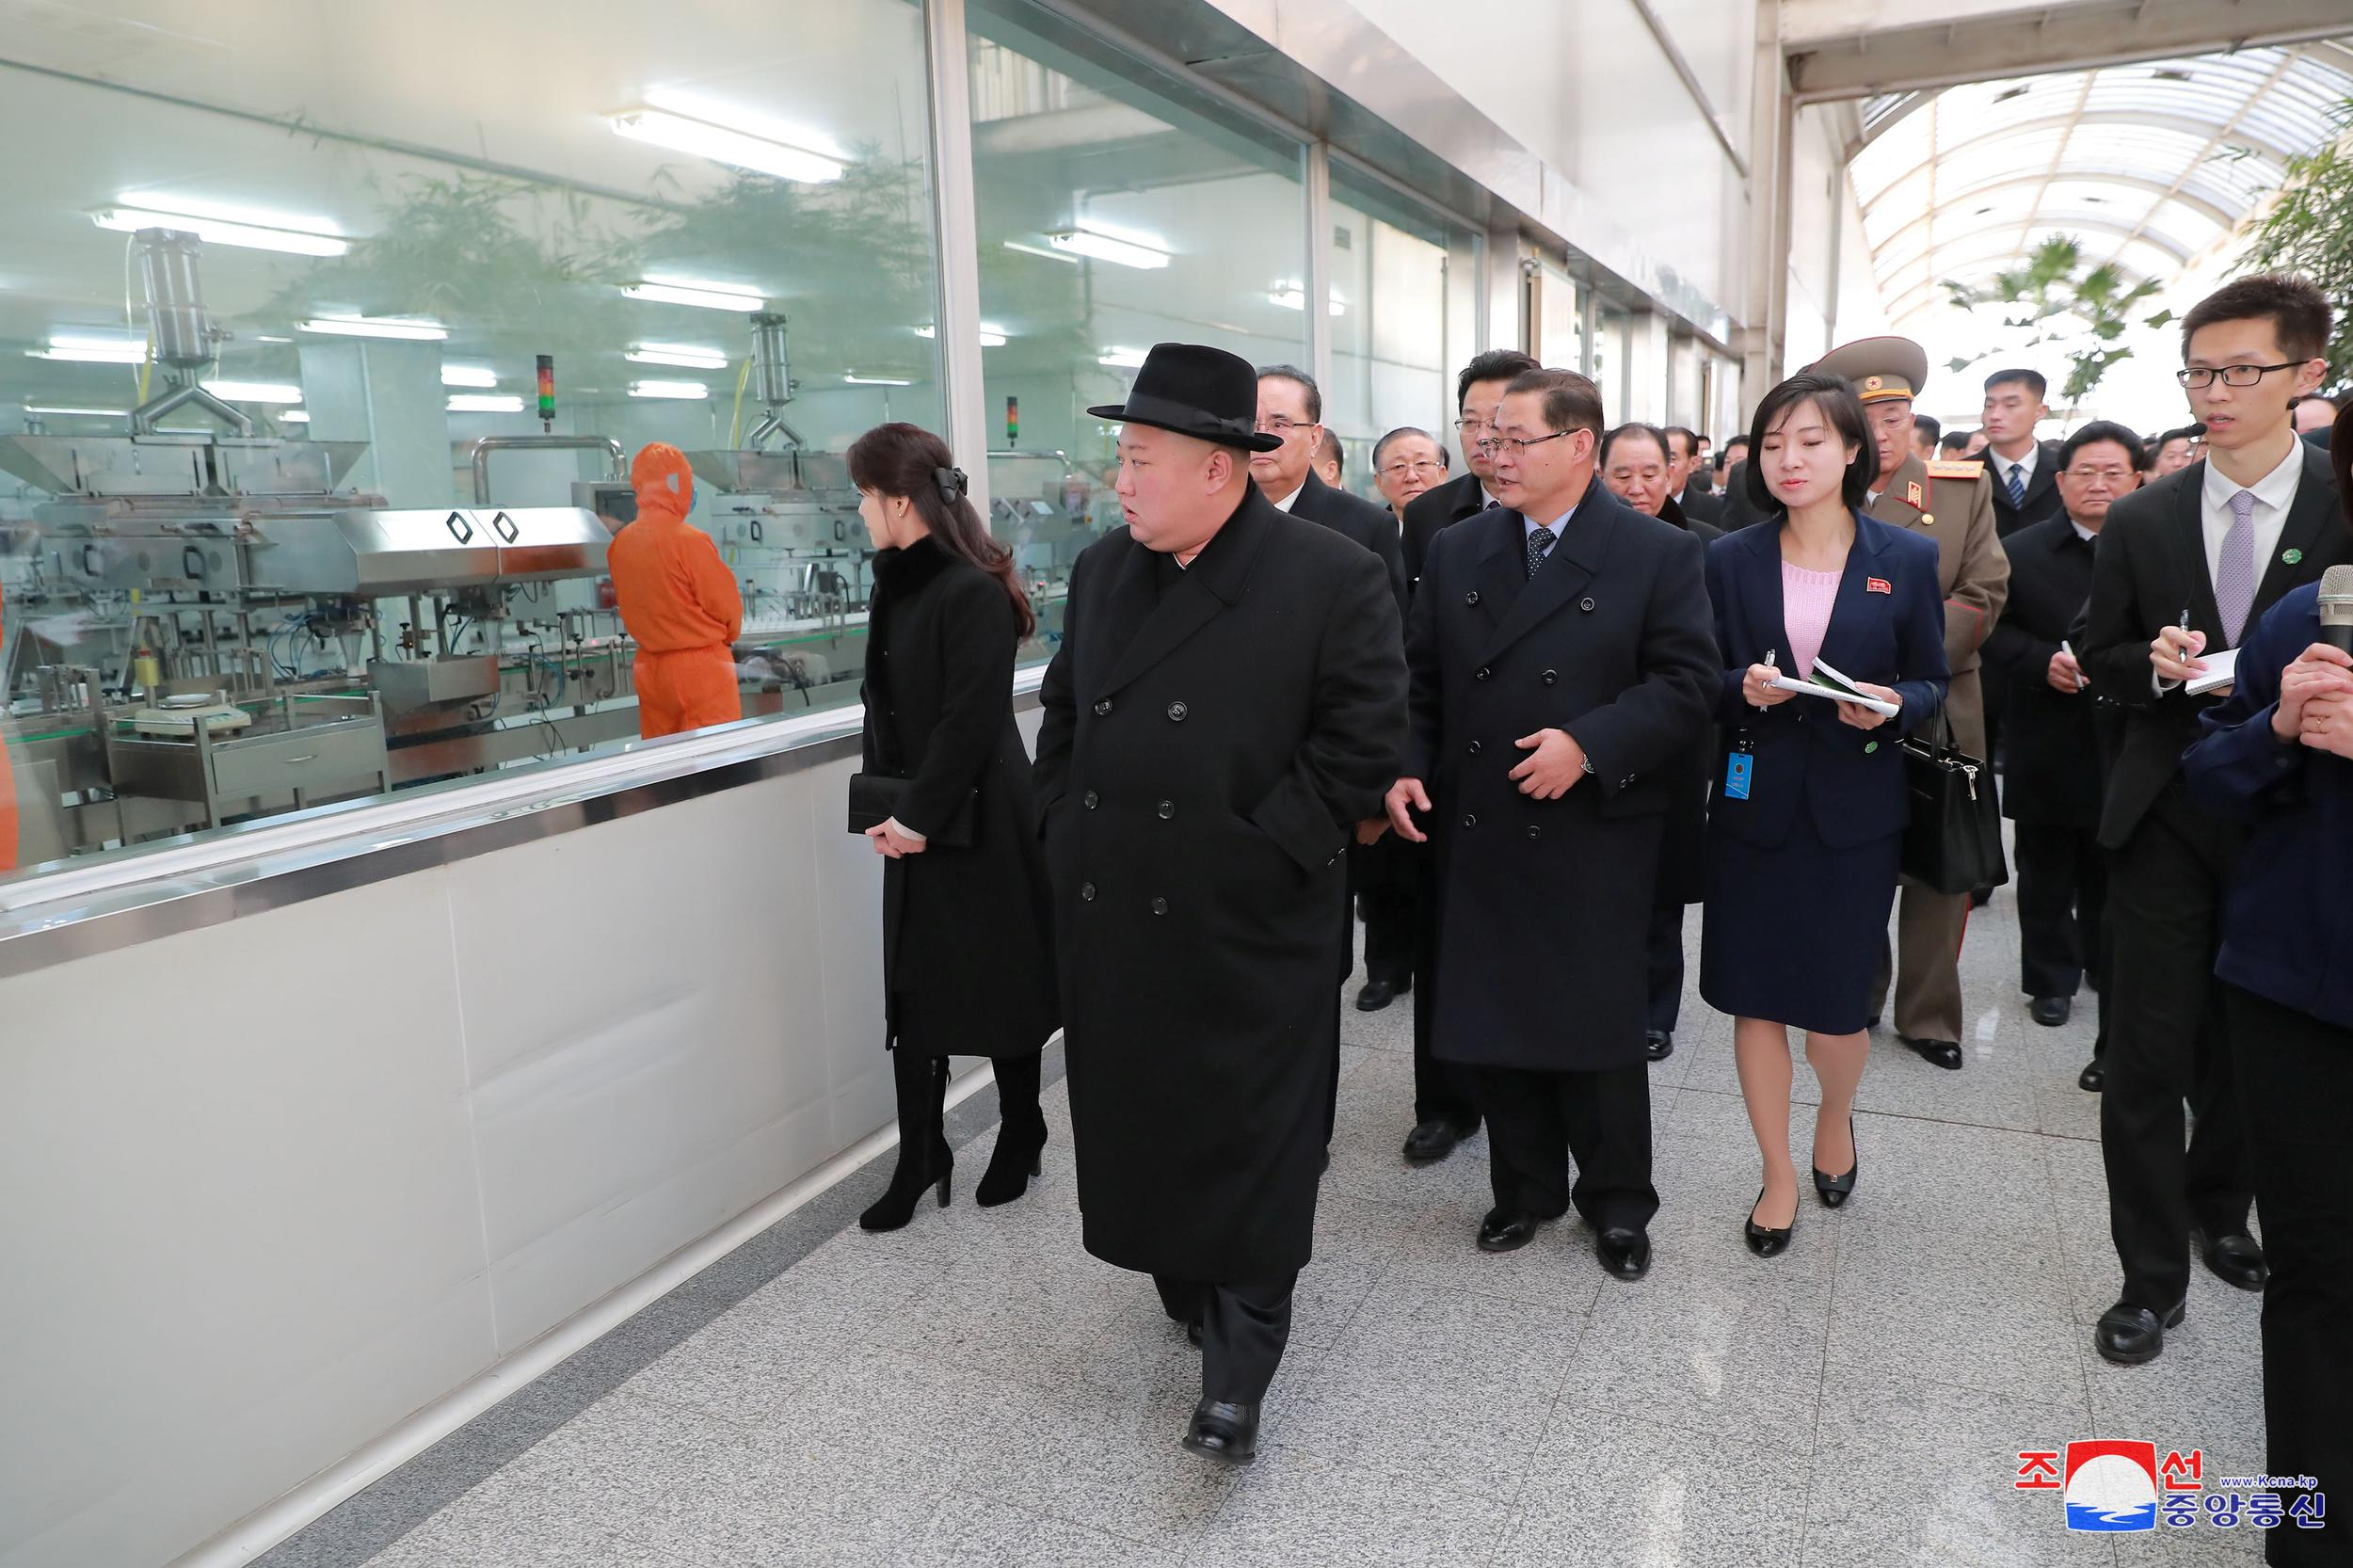 North Korean leader Kim Jong Un is seen during a visit in Beijing, China, in this photo released by North Korea's Korean Central News Agency (KCNA) on January 10, 2019. KCNA via REUTERS    ATTENTION EDITORS - THIS IMAGE WAS PROVIDED BY A THIRD PARTY. REUTERS IS UNABLE TO INDEPENDENTLY VERIFY THIS IMAGE. NO THIRD PARTY SALES. SOUTH KOREA OUT. NO COMMERCIAL OR EDITORIAL SALES IN SOUTH KOREA.